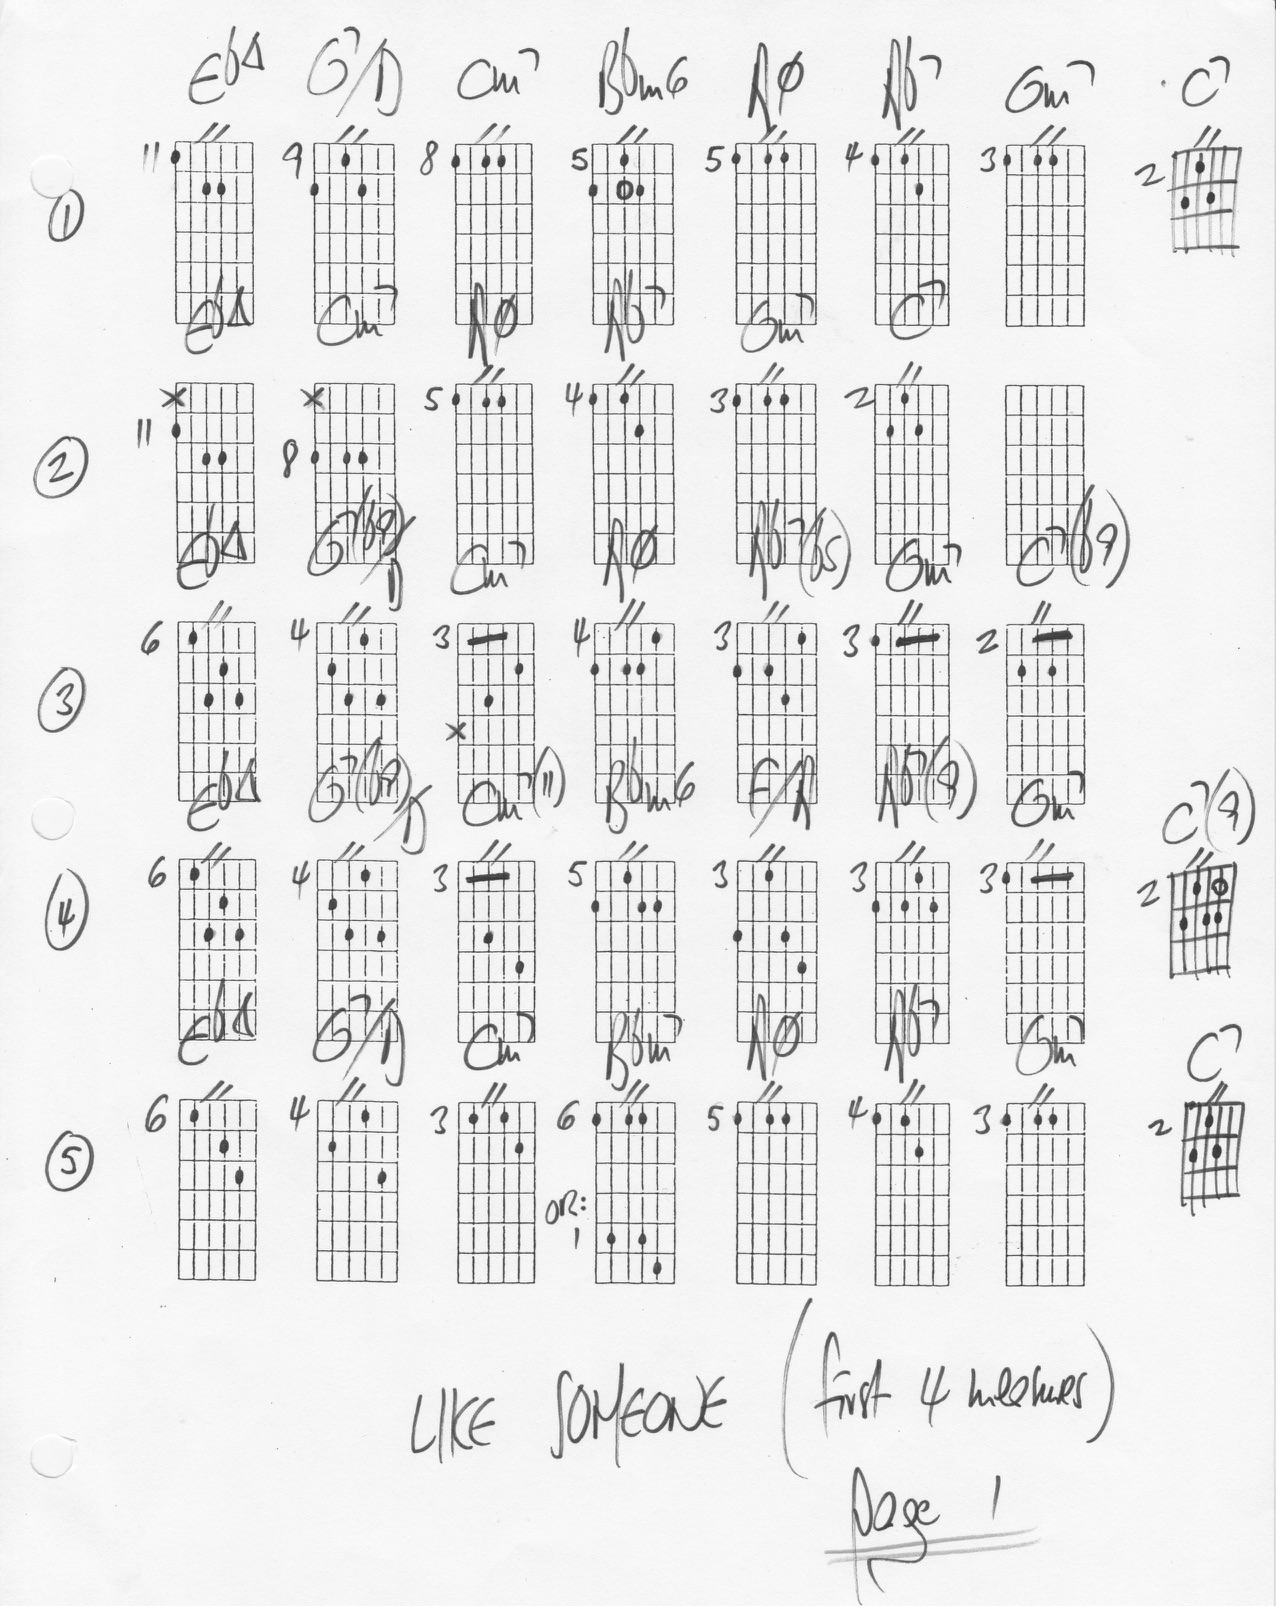 Like Someone In Love - chord changes - substitutions